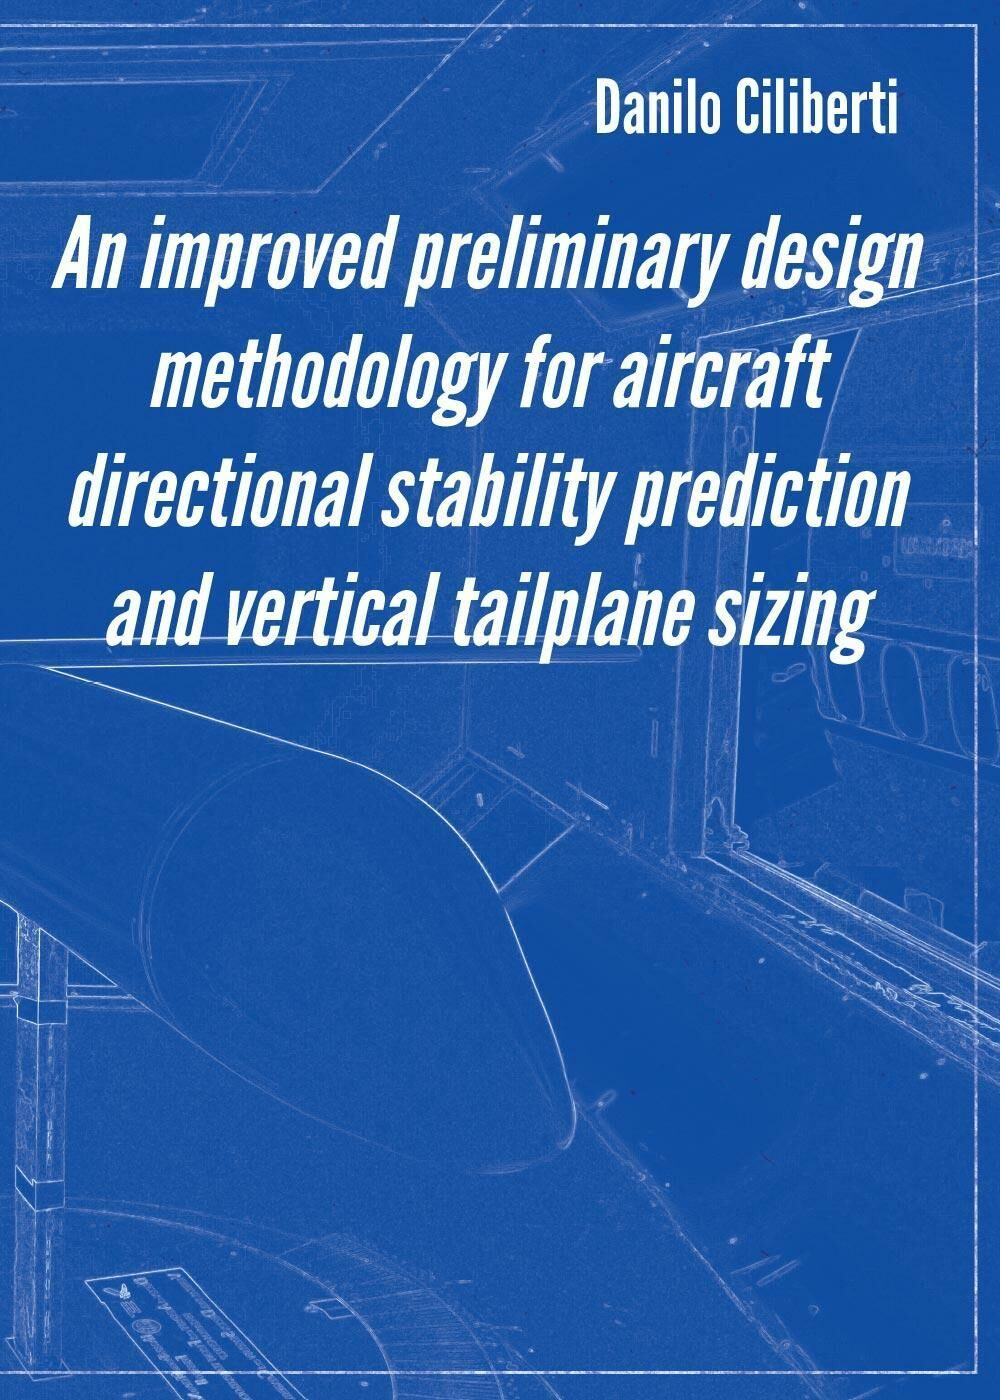 An improved preliminary design methodology for aircraft directional stability prediction and vertical tailplane sizing